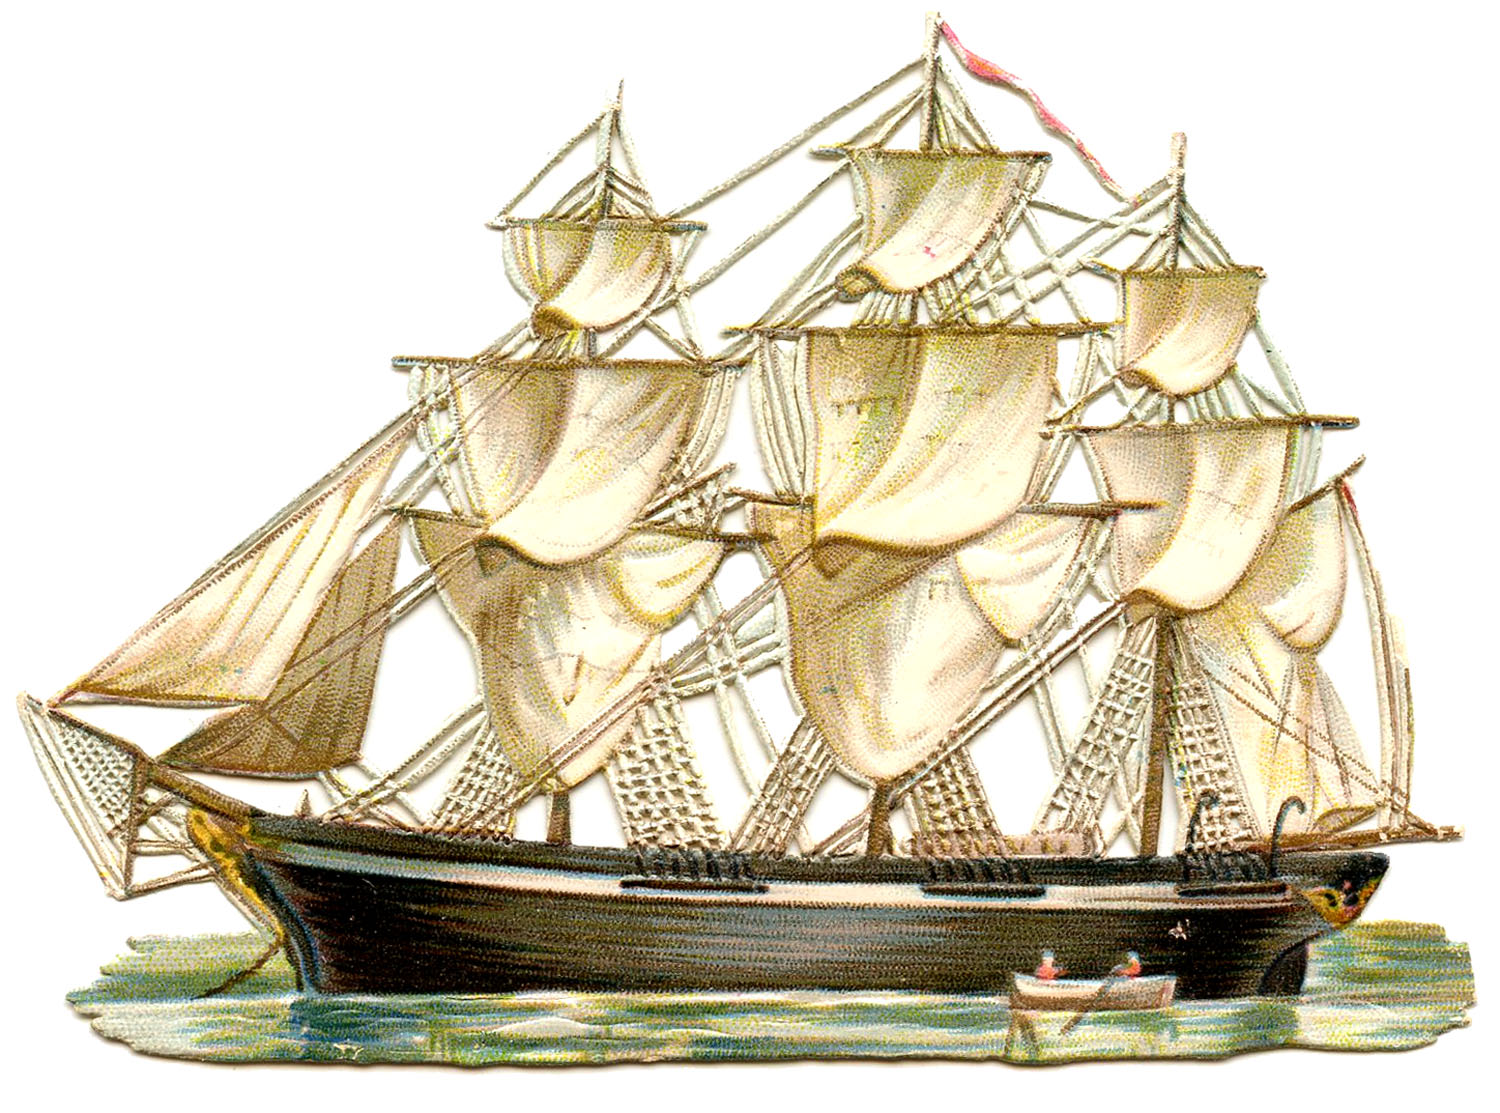 Vintage Image - Beautiful Ship - The Graphics Fairy